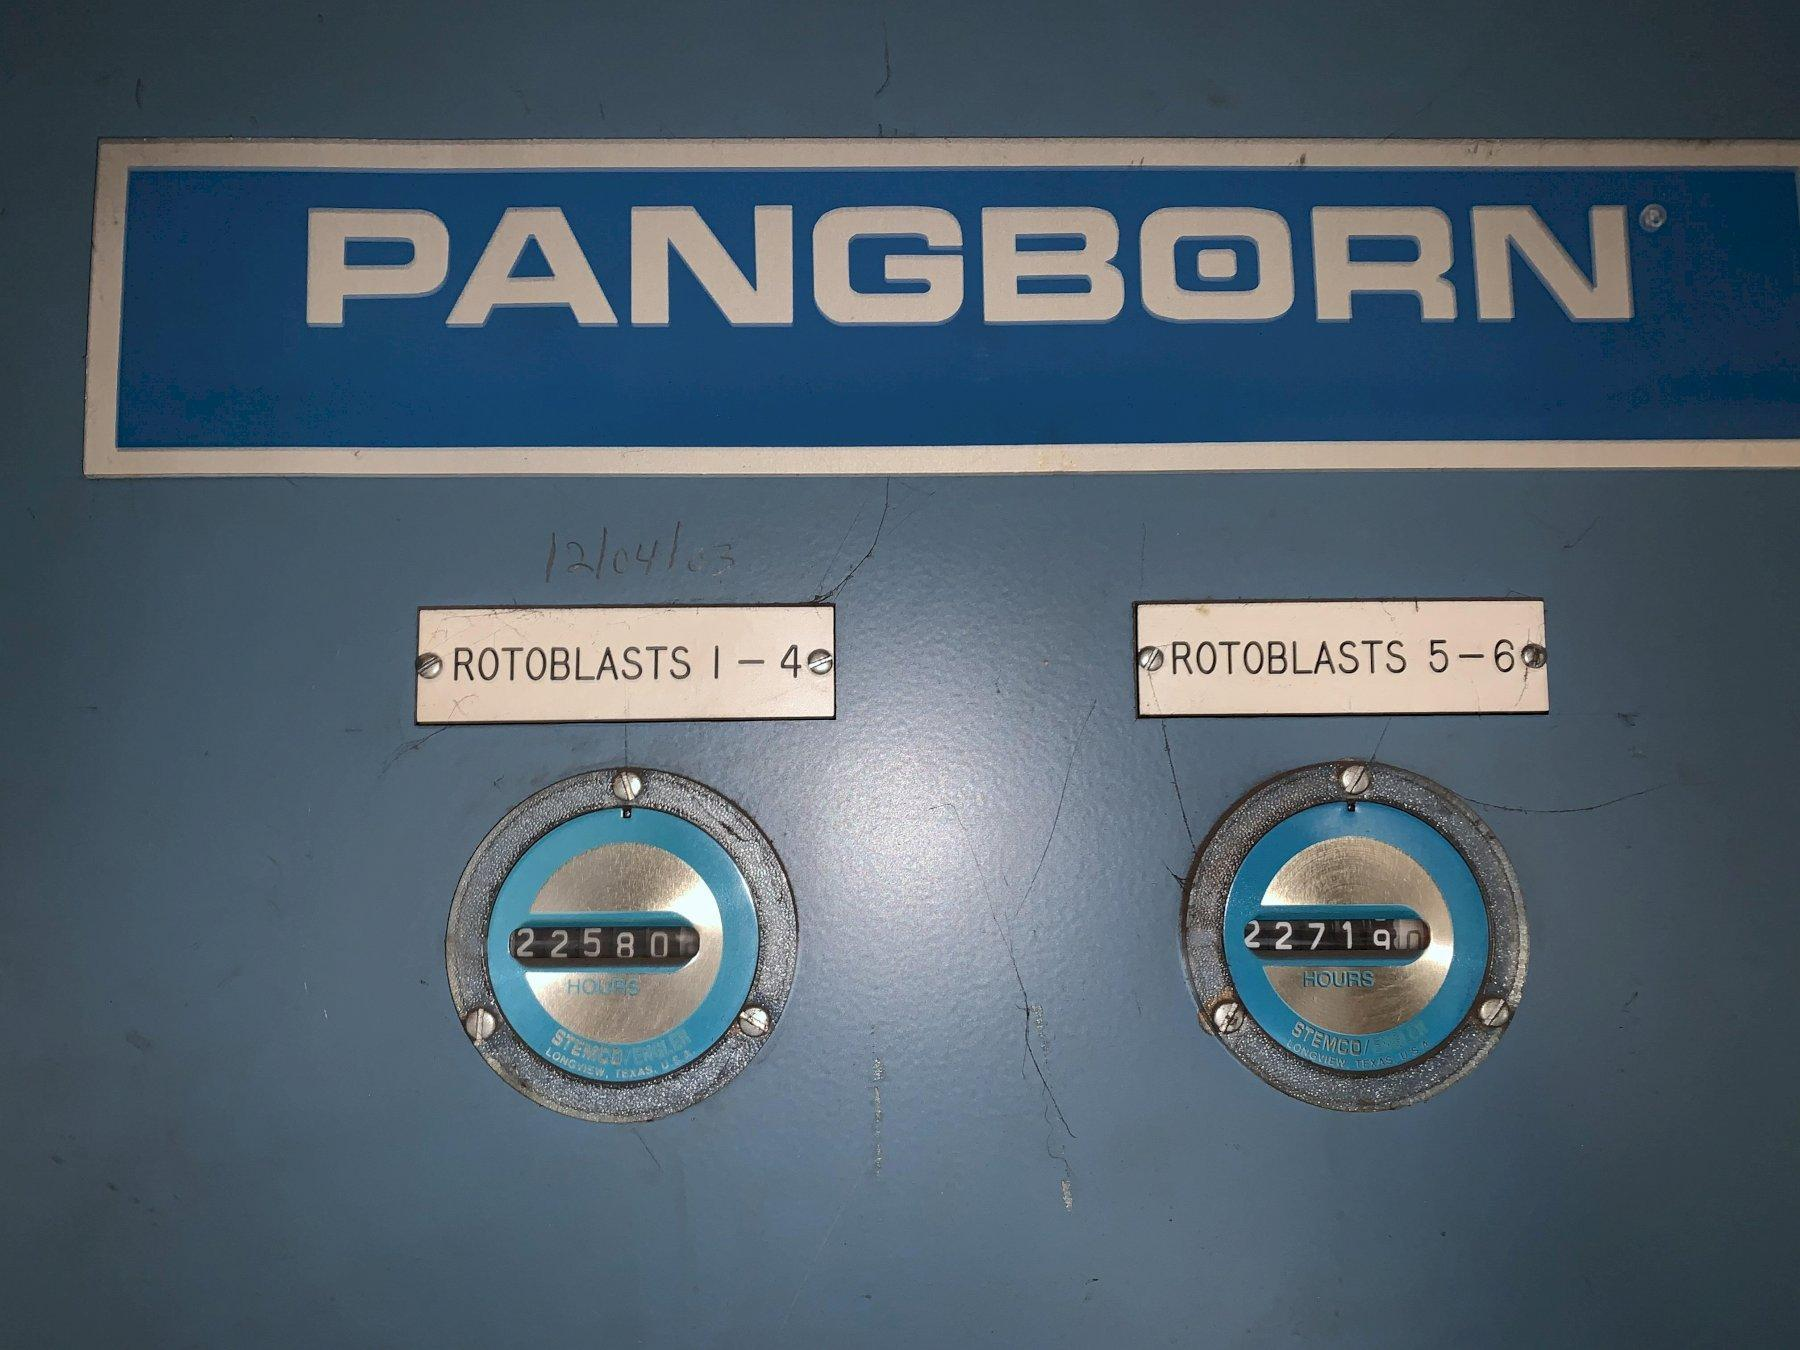 "162"" WIDE X 6 WHEEL PANGBORN ROTOBLAST MODEL #ES-1923 TOP & BOTTOM PLATE BLAST CLEANING SYSTEM. STOCK # 1057220"